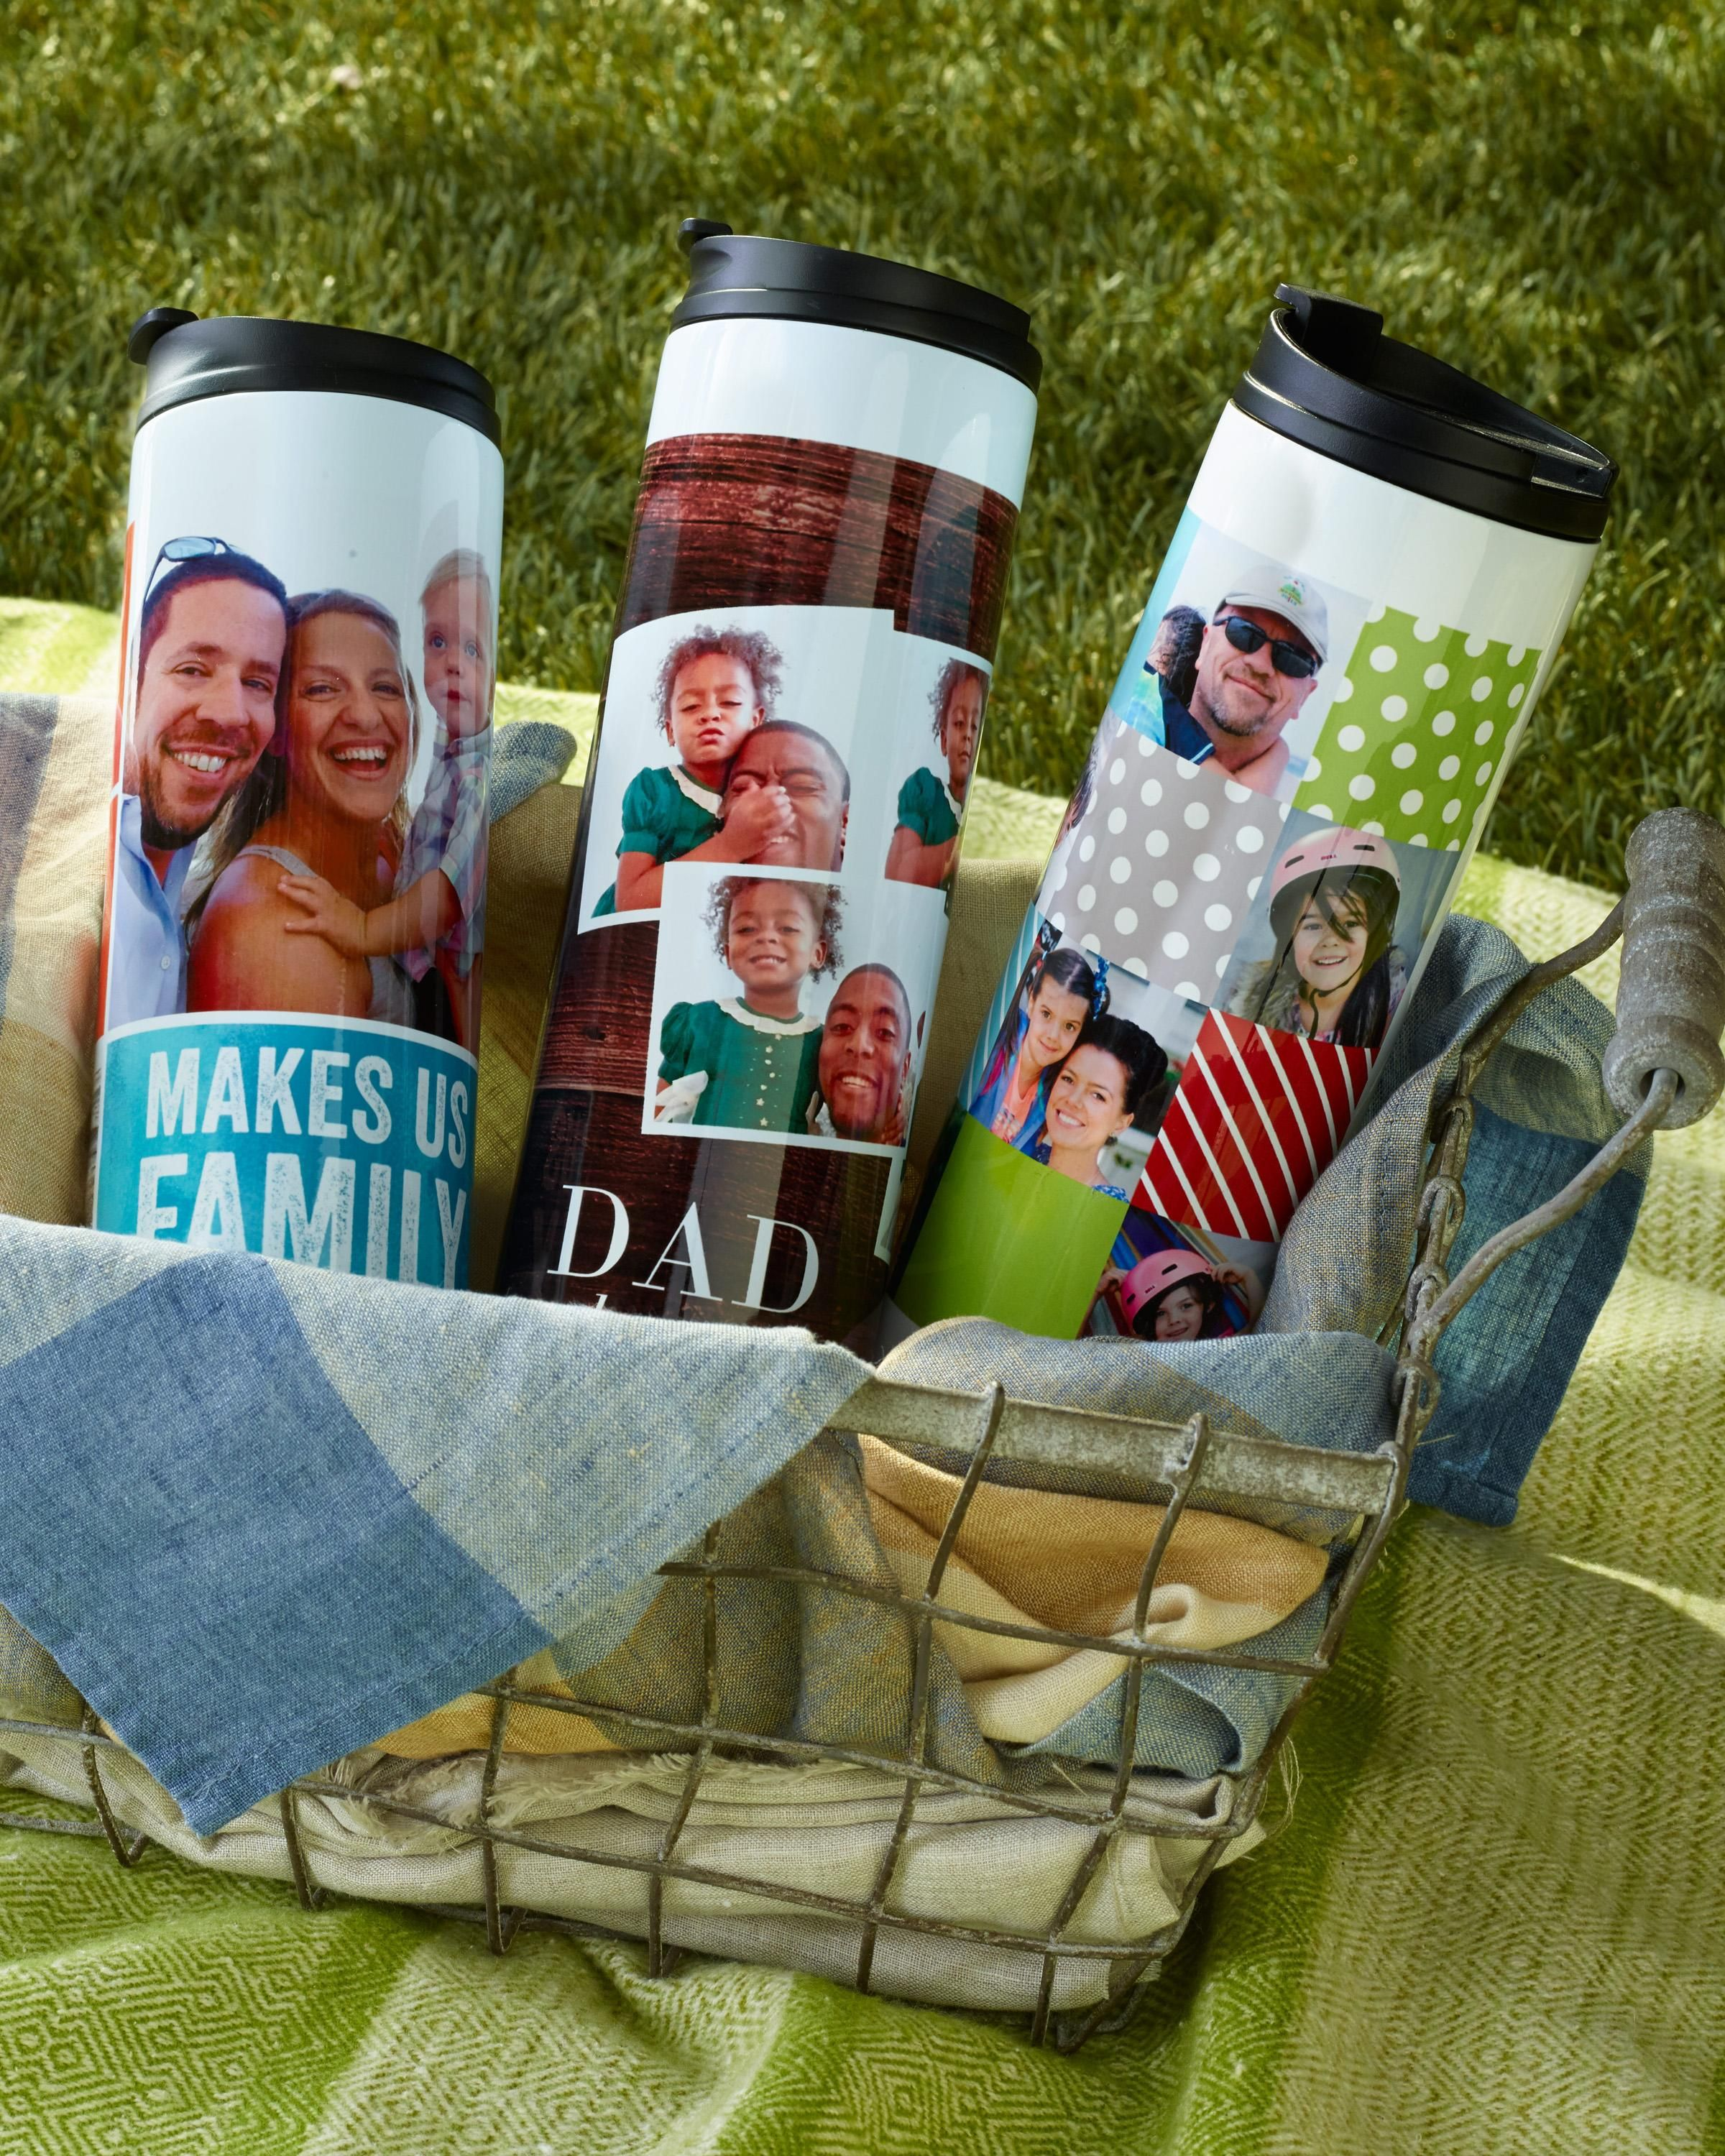 Is Dad on the go? Personalize a stainless steel travel mug for him this Father's Day so you're with him wherever you go. | Shutterfly